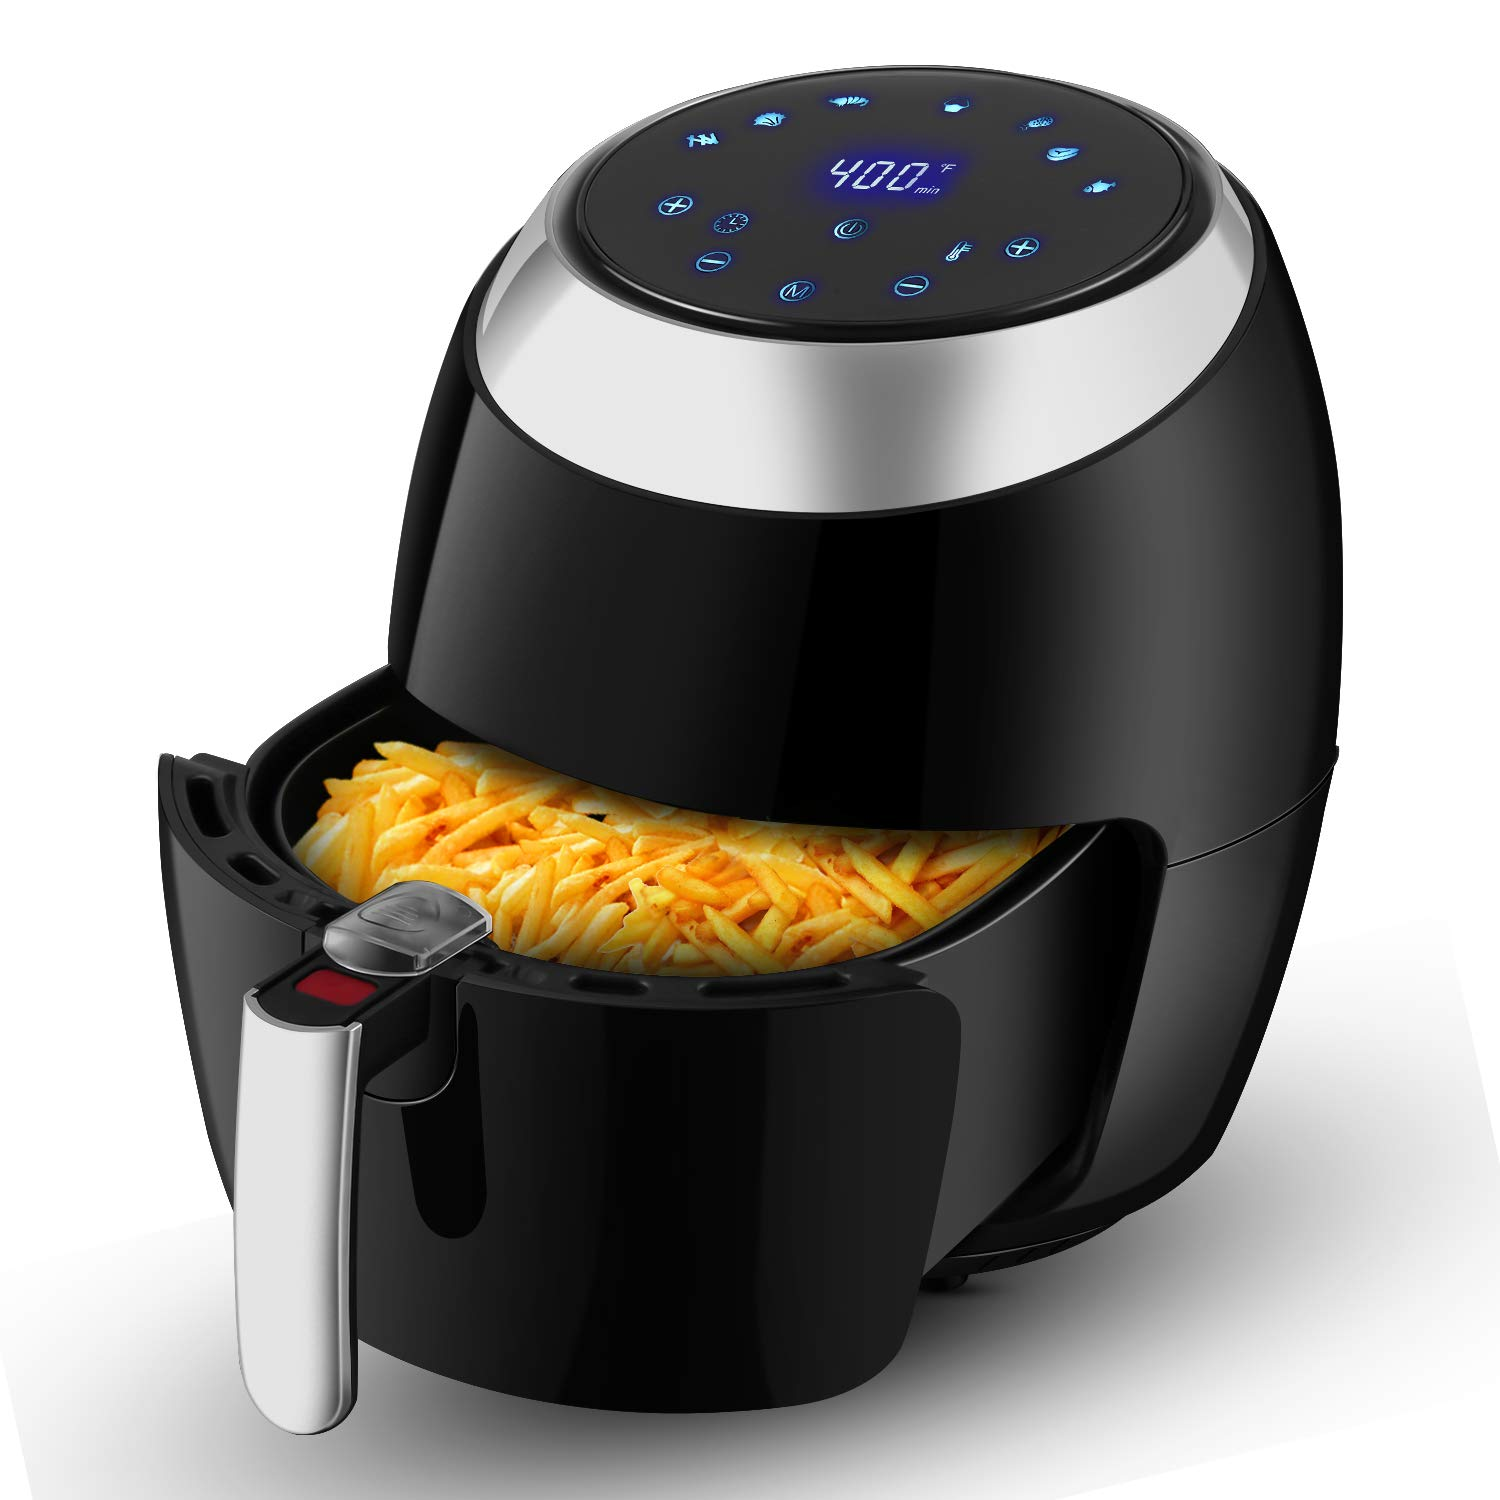 6.8 QT Air Fryer XL, Electric Hot Air Fryers Oven Oilless Cooker with LCD Digital Touch Screen, 1800 Watt Black